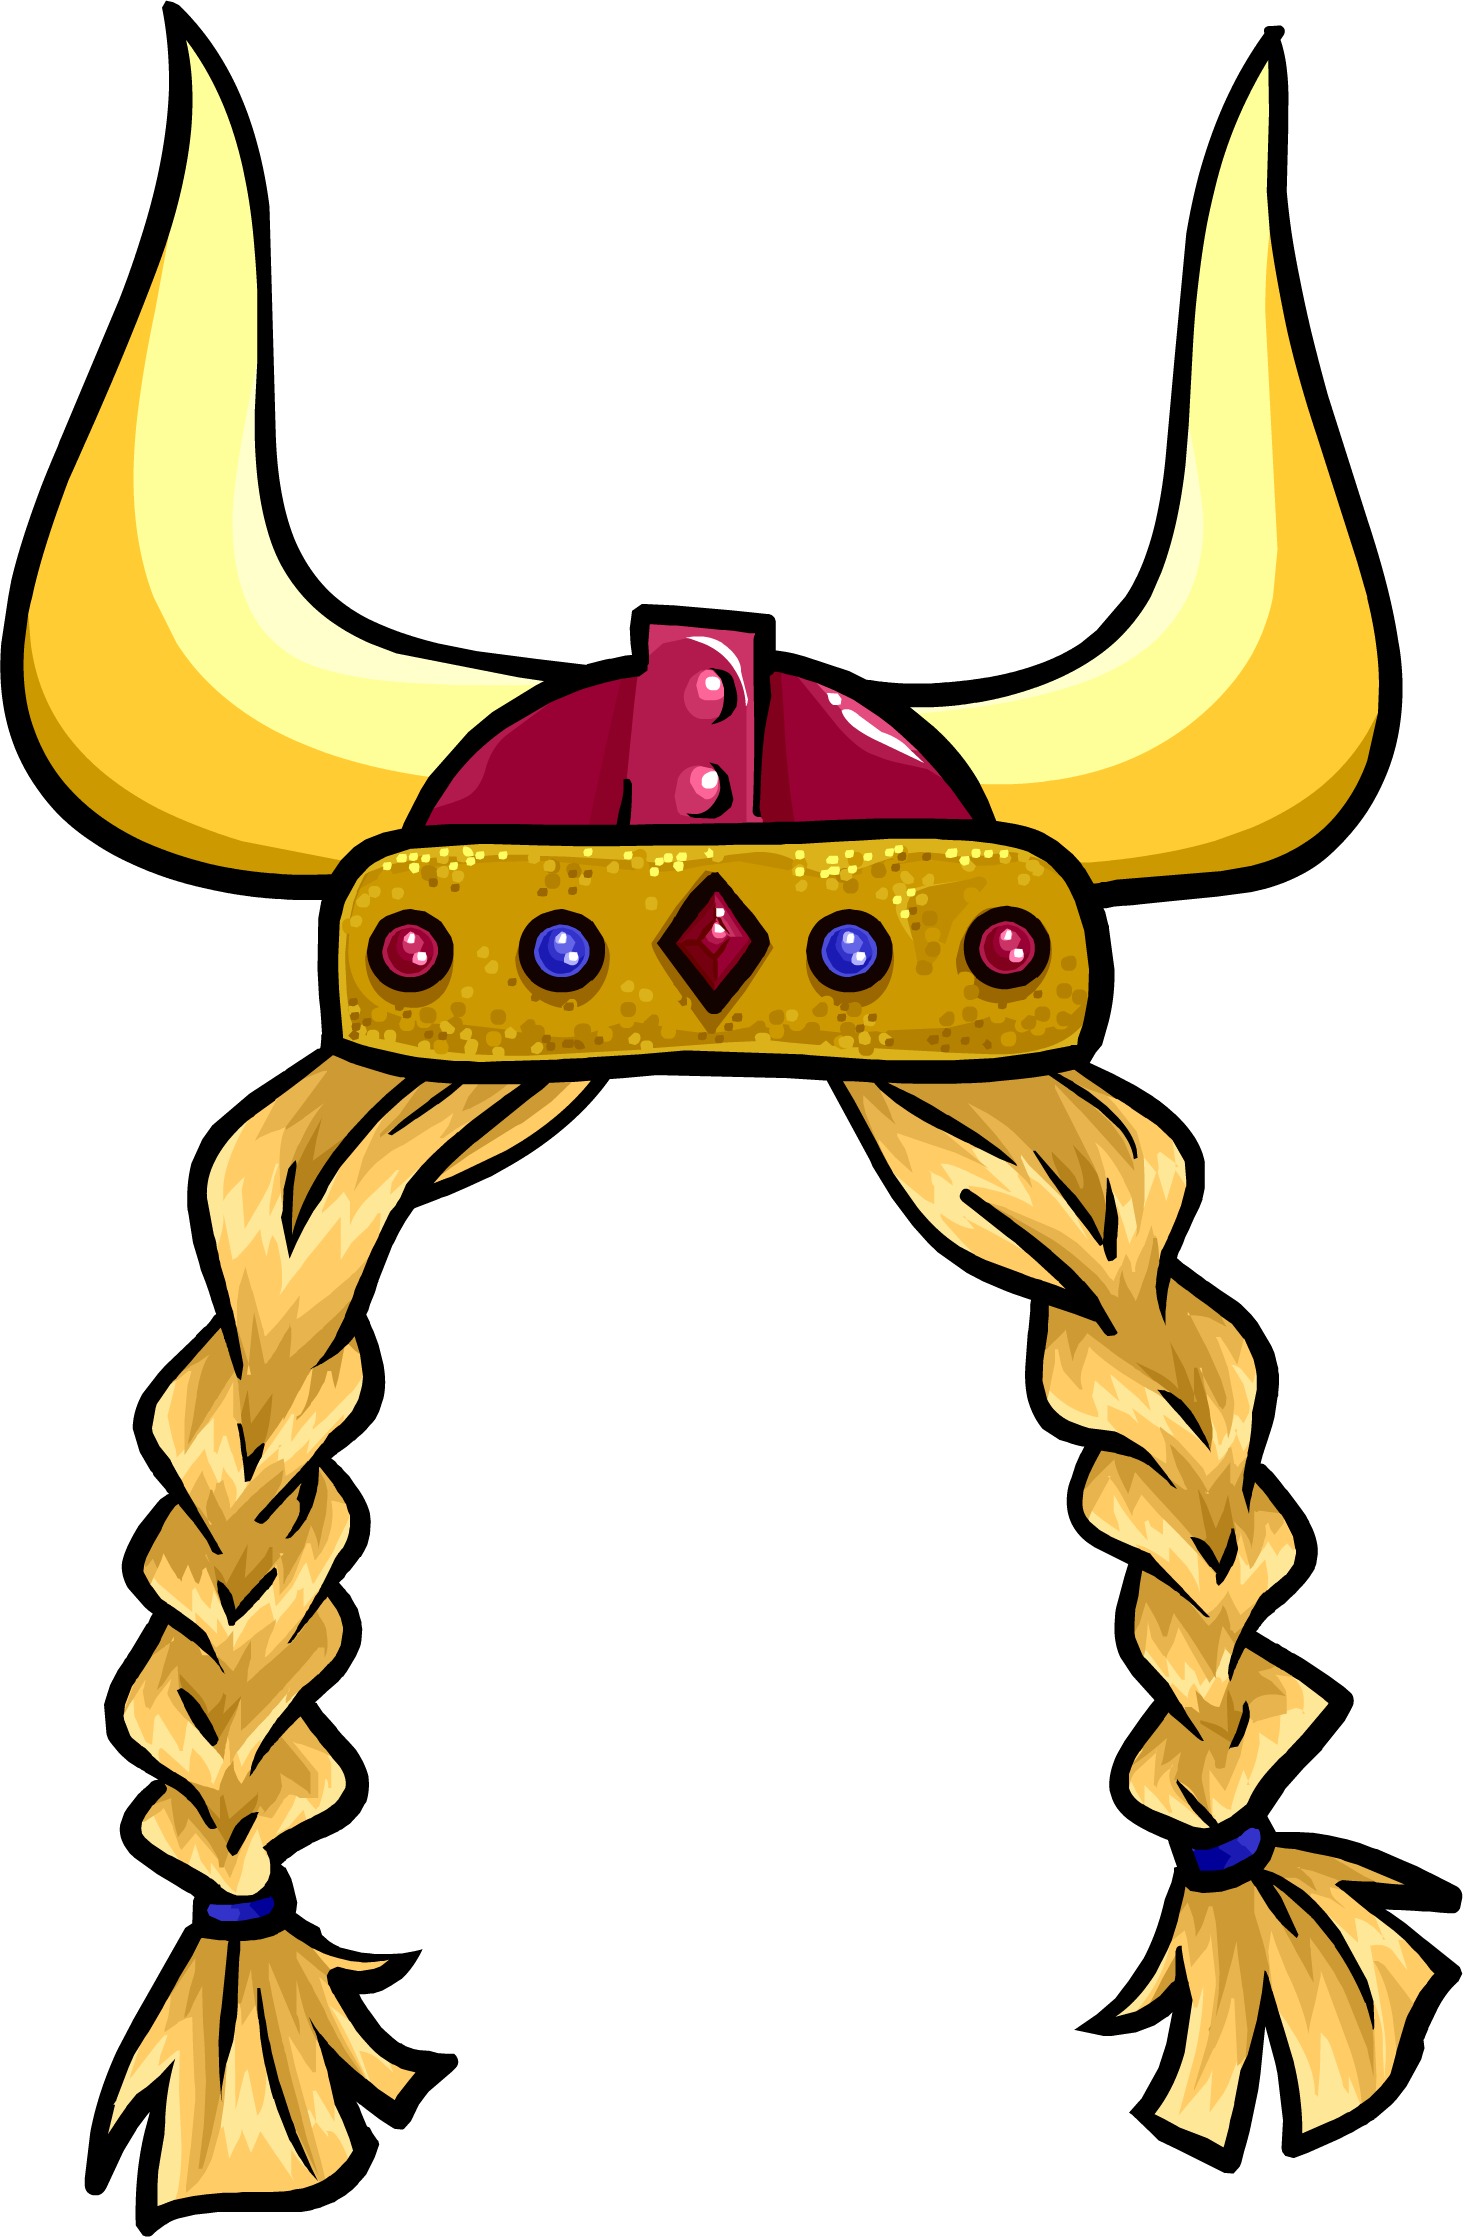 Viking hat png. Image jewelled helmet club